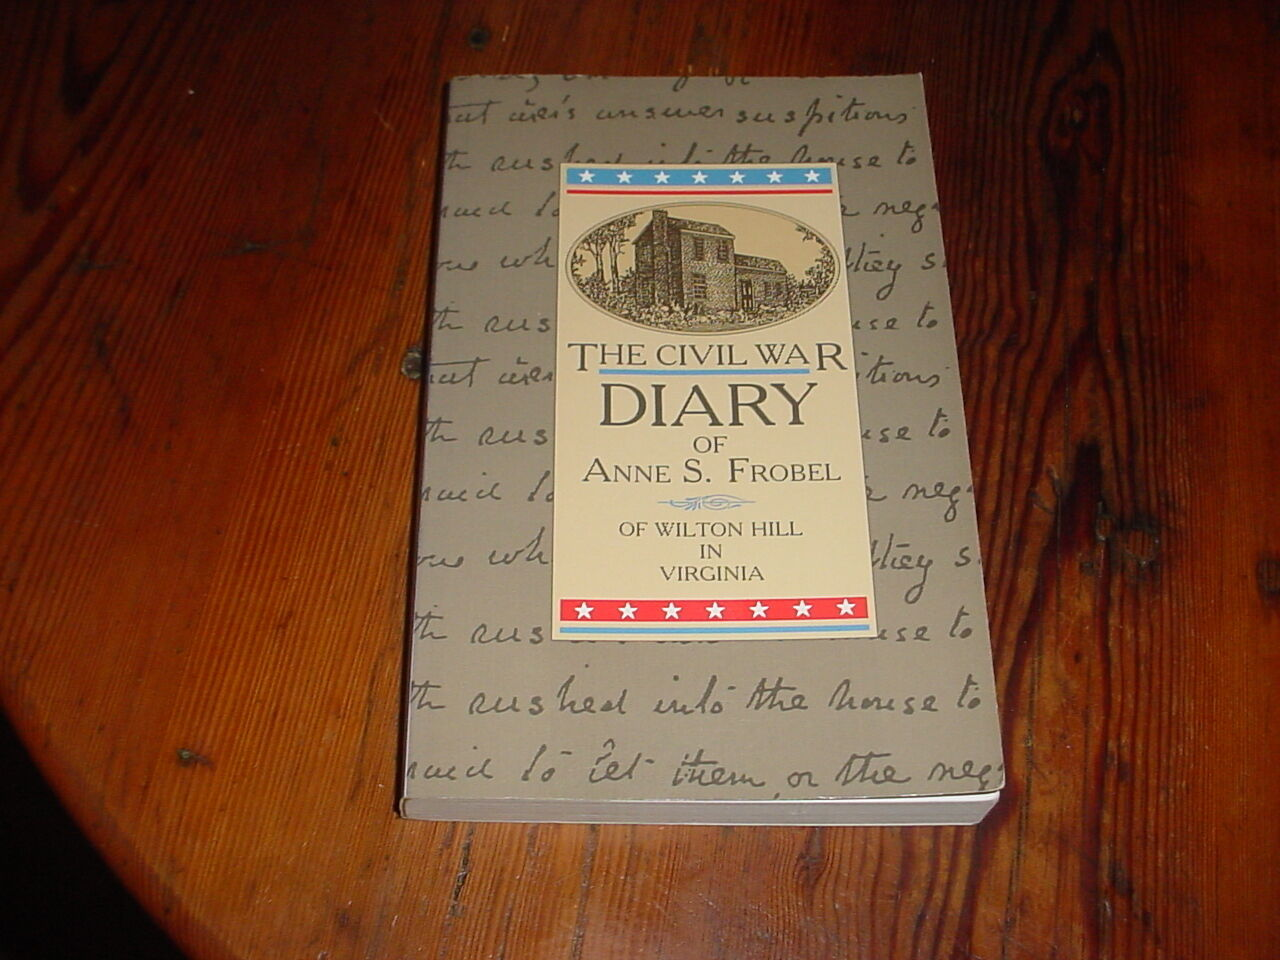 The civil war diary of anne s frobel 1992 paperback ebay fandeluxe Image collections